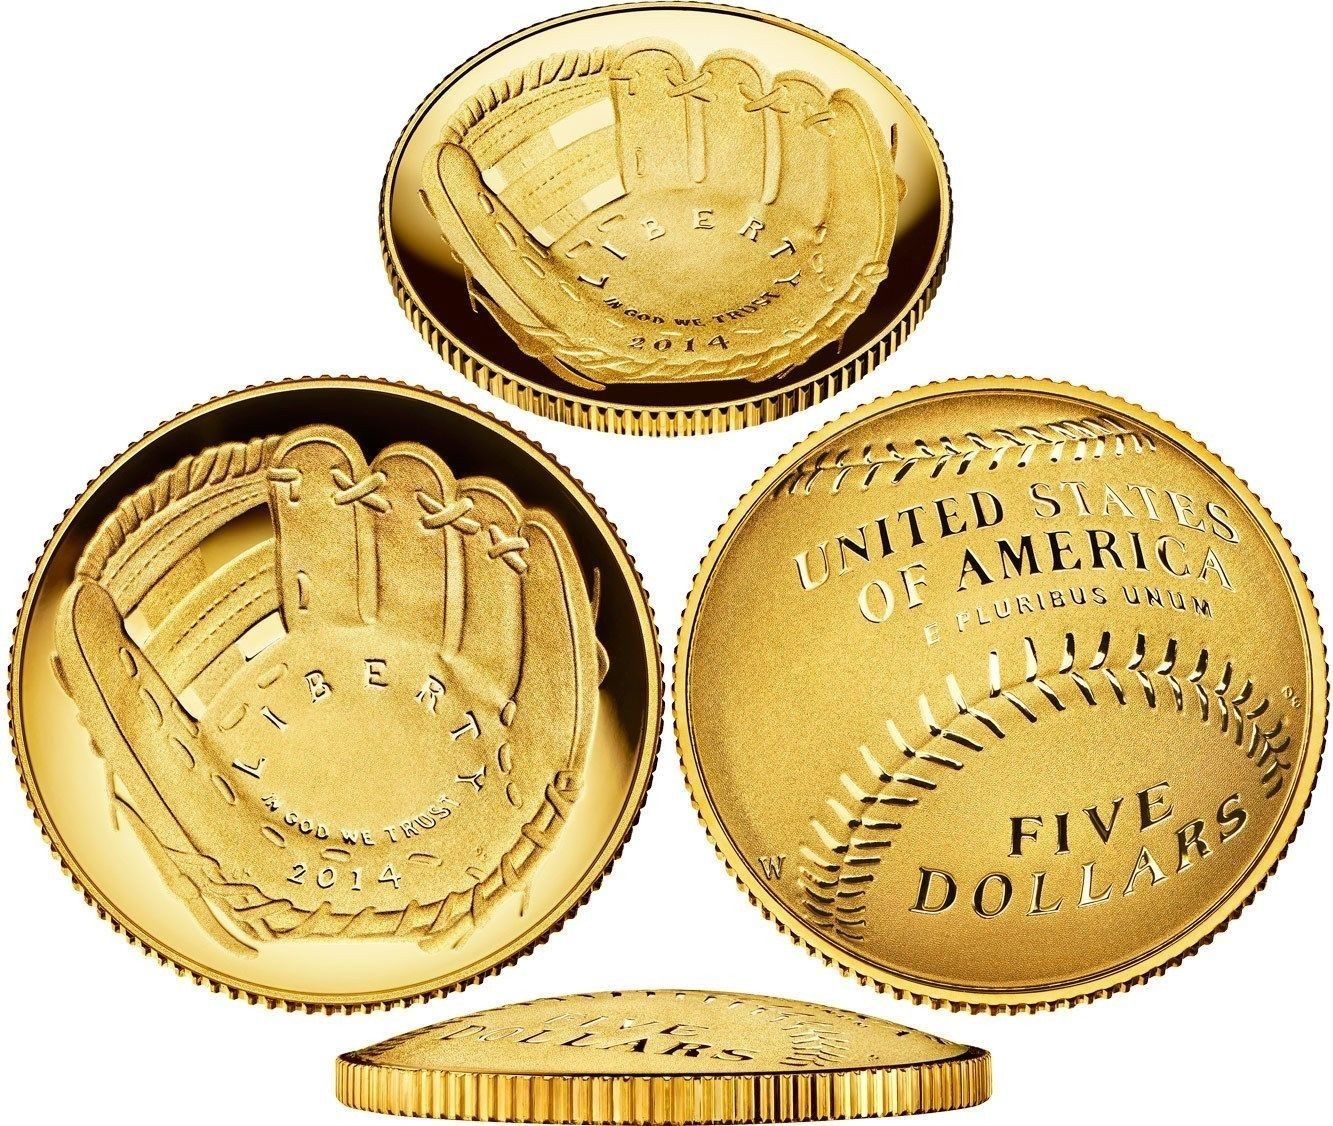 Gold $5 coin Baseball Hall of Fame